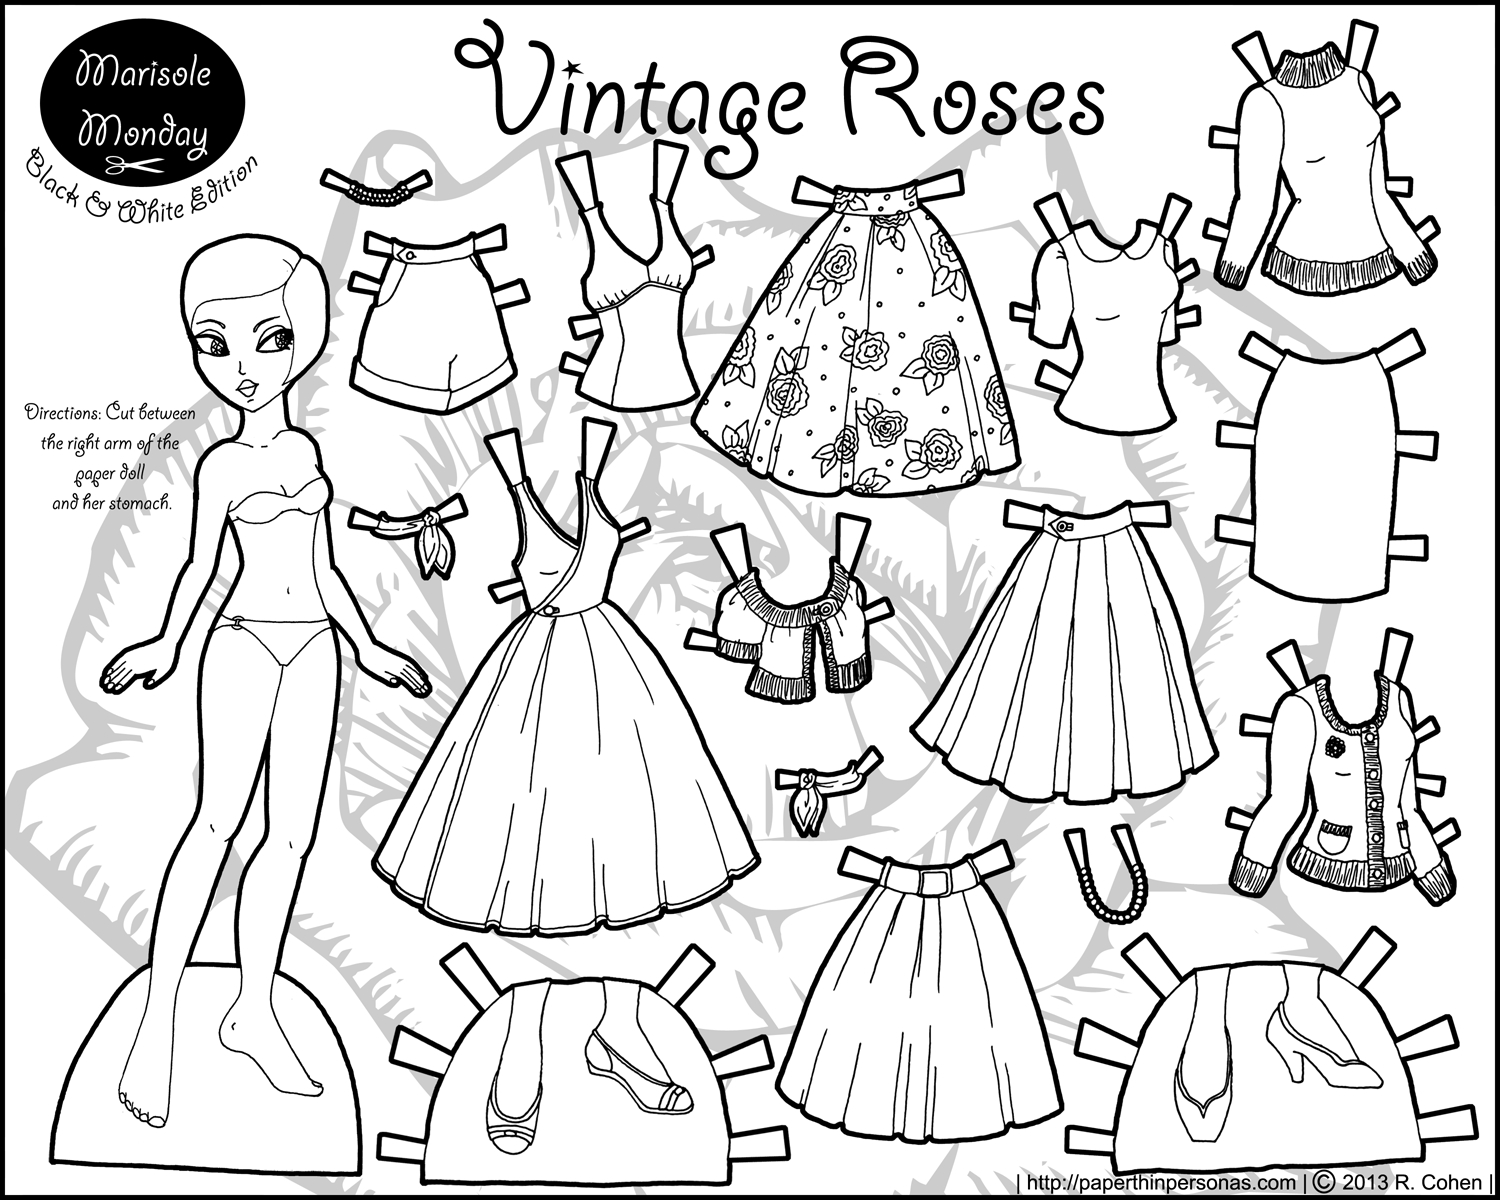 Marisole Monday: Vintage Roses | Coloring! | Paper Dolls, Paper - Free Printable Paper Doll Coloring Pages